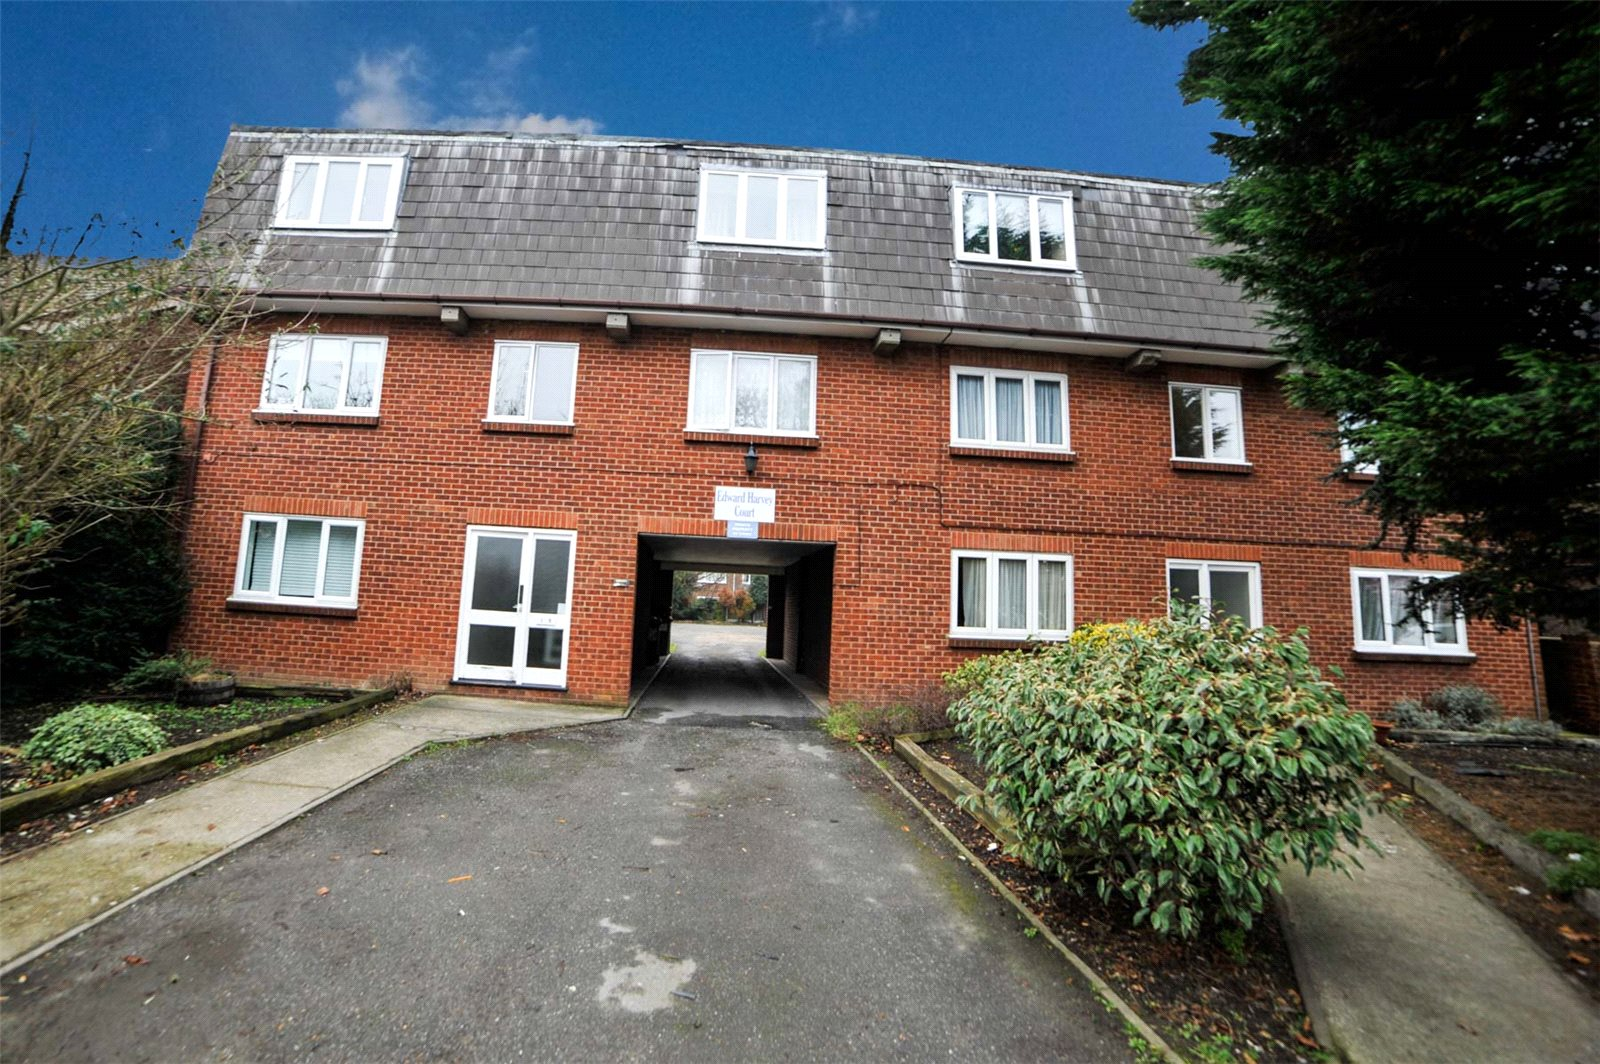 Flat 4, Edward Harvey Court, Woolwich Road, Belvedere, DA17